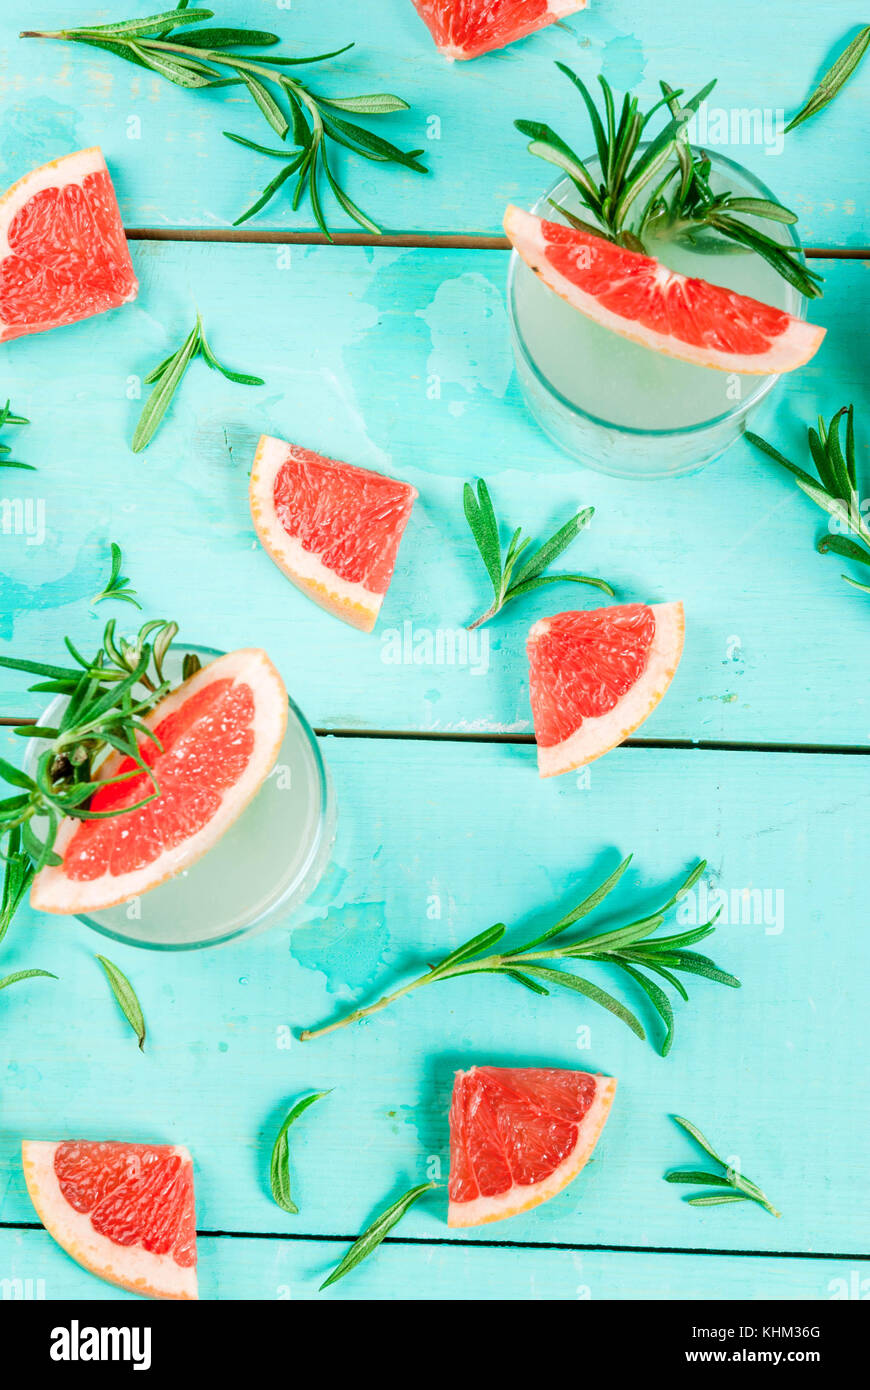 Alcohol drink, Rosemary, Grapefruit & Gin Cocktail, On light blue wooden table background, copy space top view - Stock Image